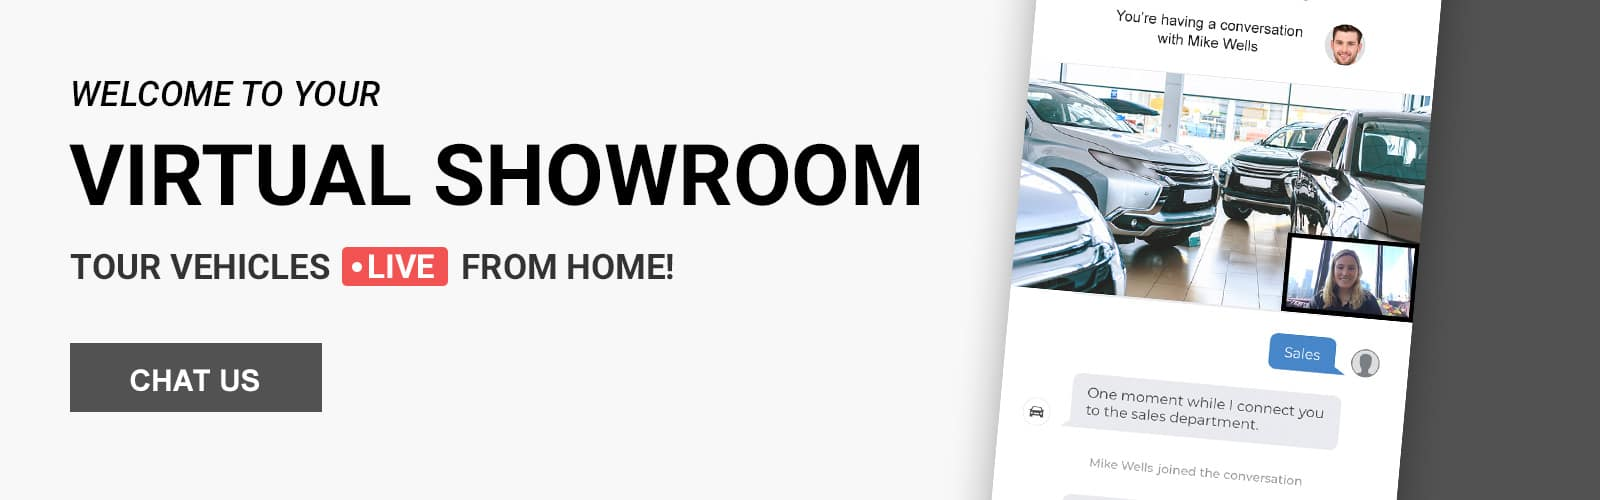 Welcome to our virtual showroom